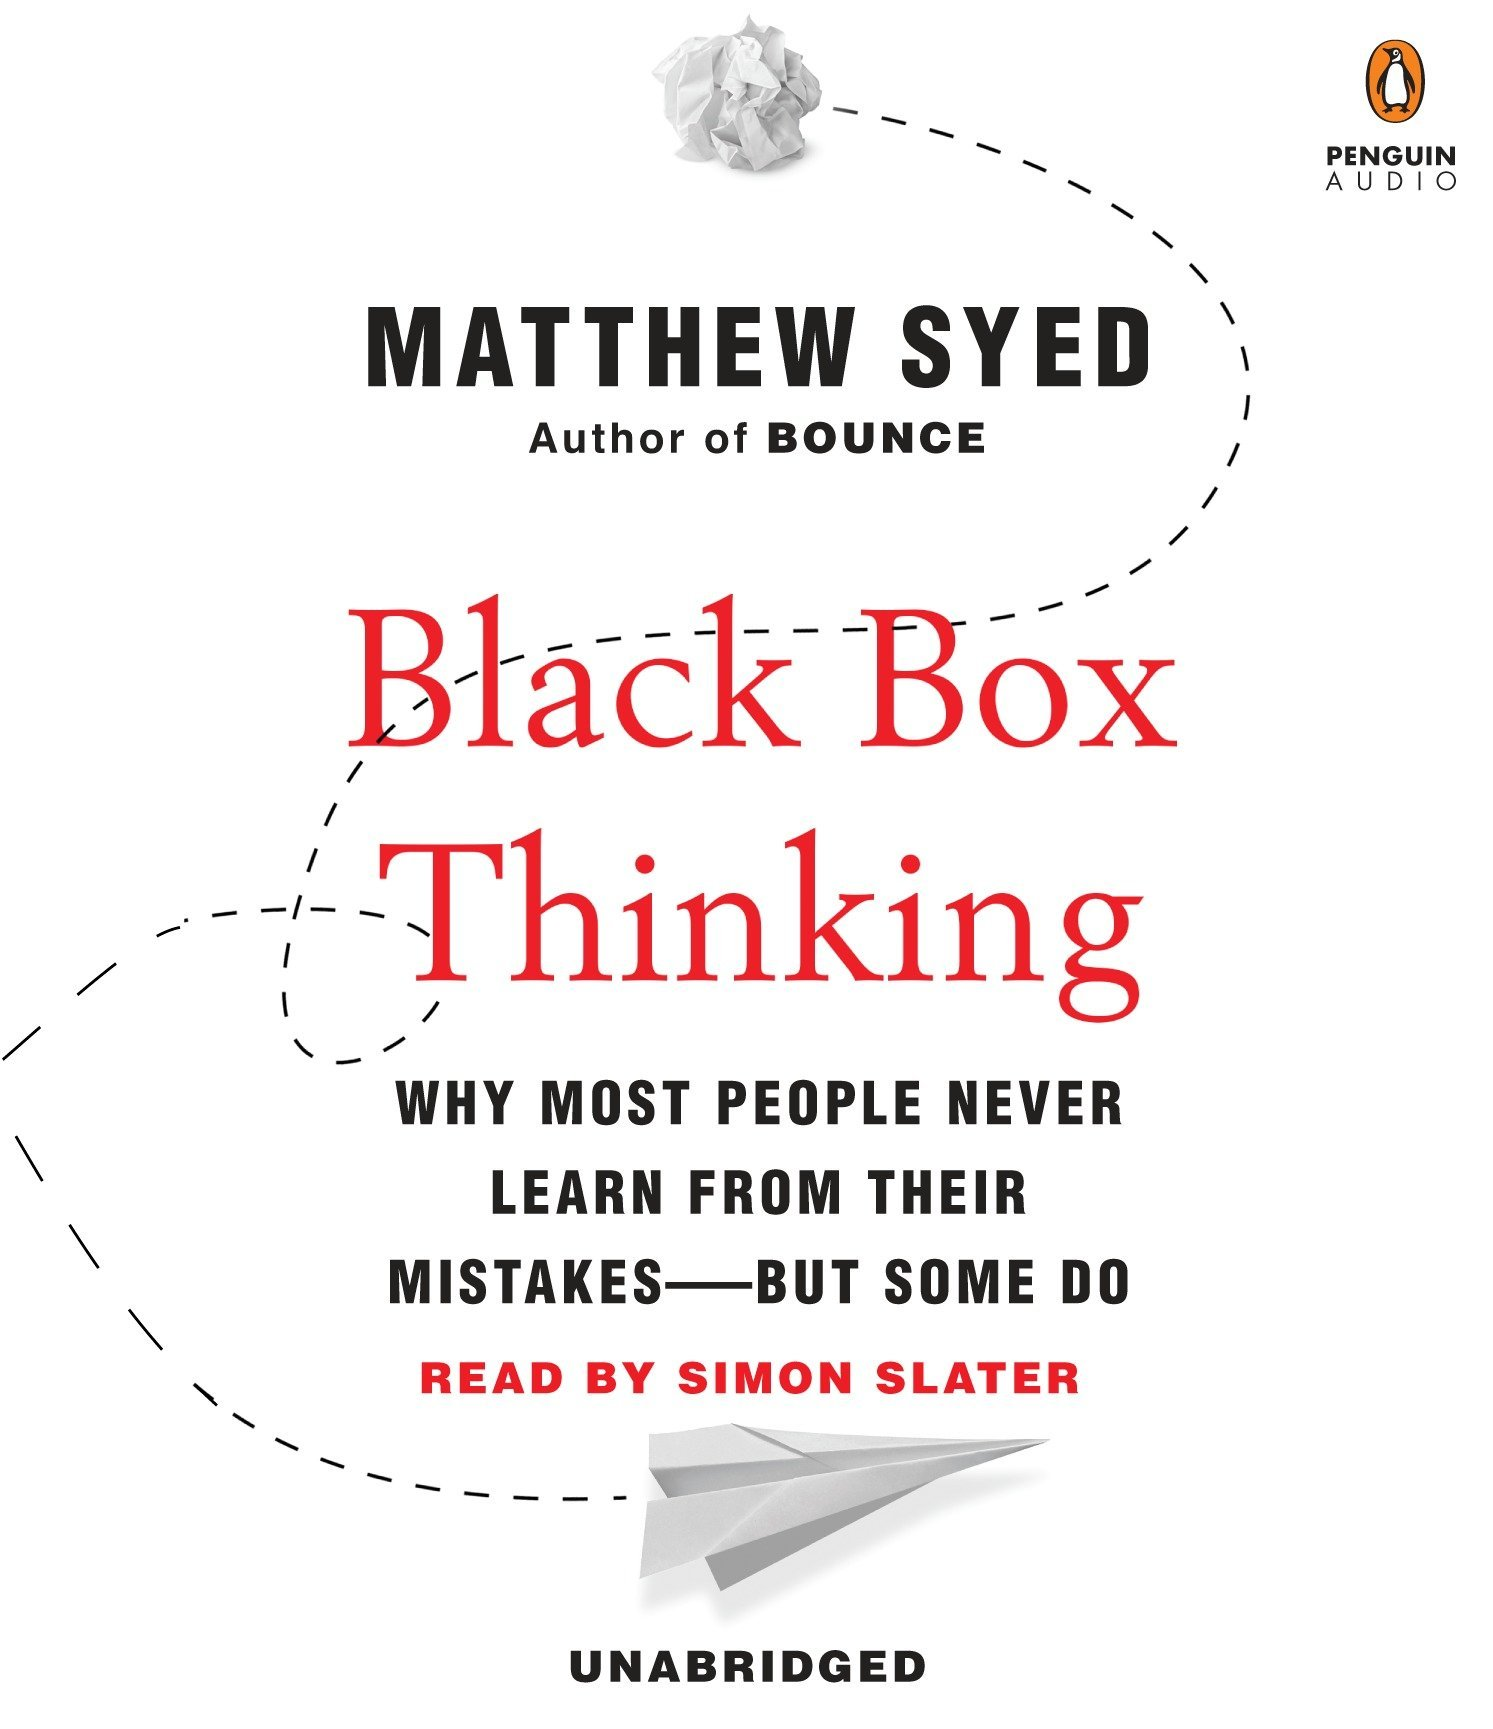 Black Box Thinking: Why Most People Never Learn from Their Mistakes--But Some Do: Amazon.es: Syed, Matthew, Slater, Simon: Libros en idiomas extranjeros